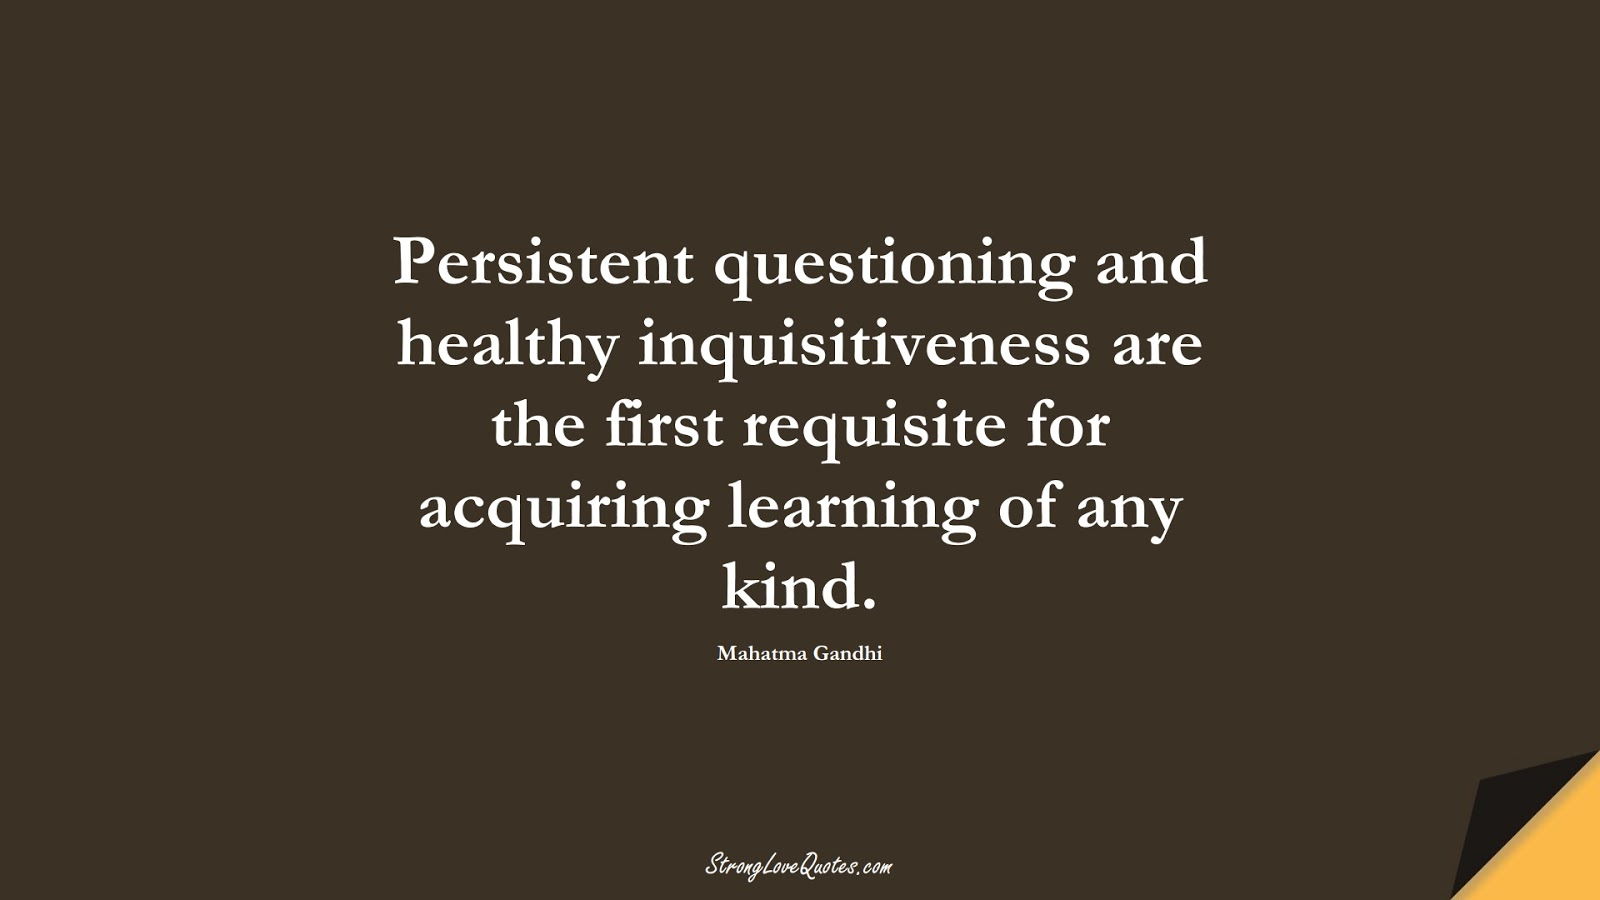 Persistent questioning and healthy inquisitiveness are the first requisite for acquiring learning of any kind. (Mahatma Gandhi);  #LearningQuotes